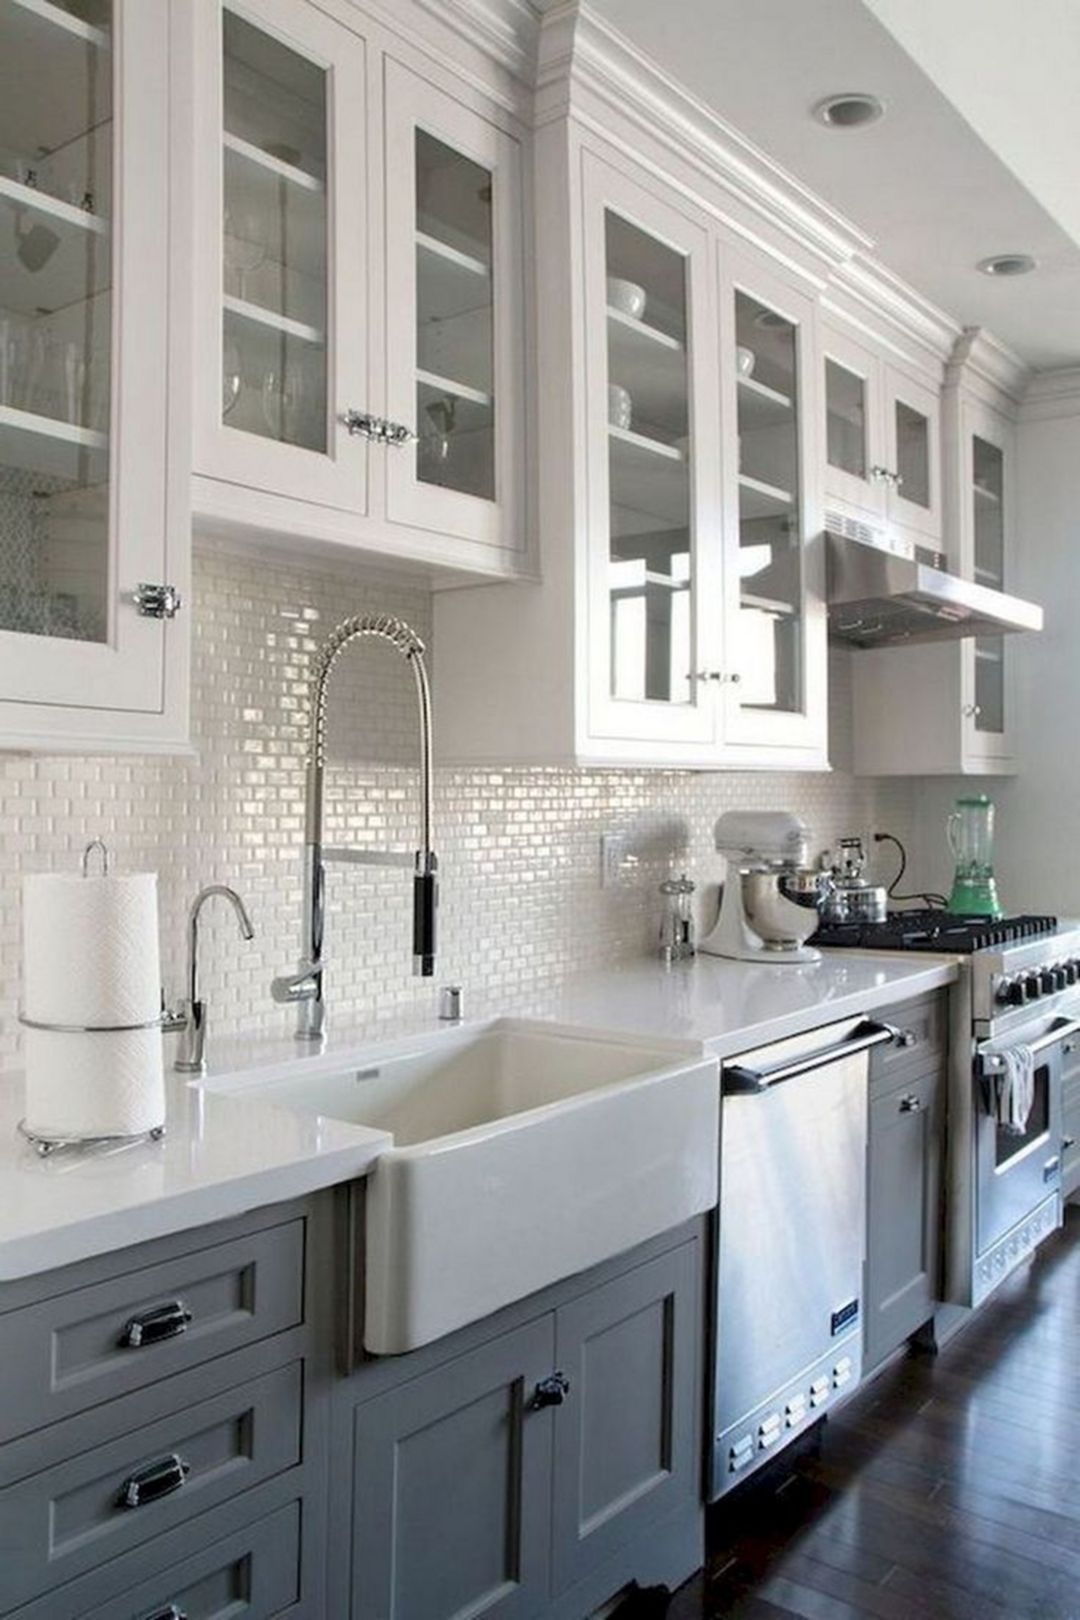 Photo of next it comes to designing a little kitchen, the key should always be creativity…